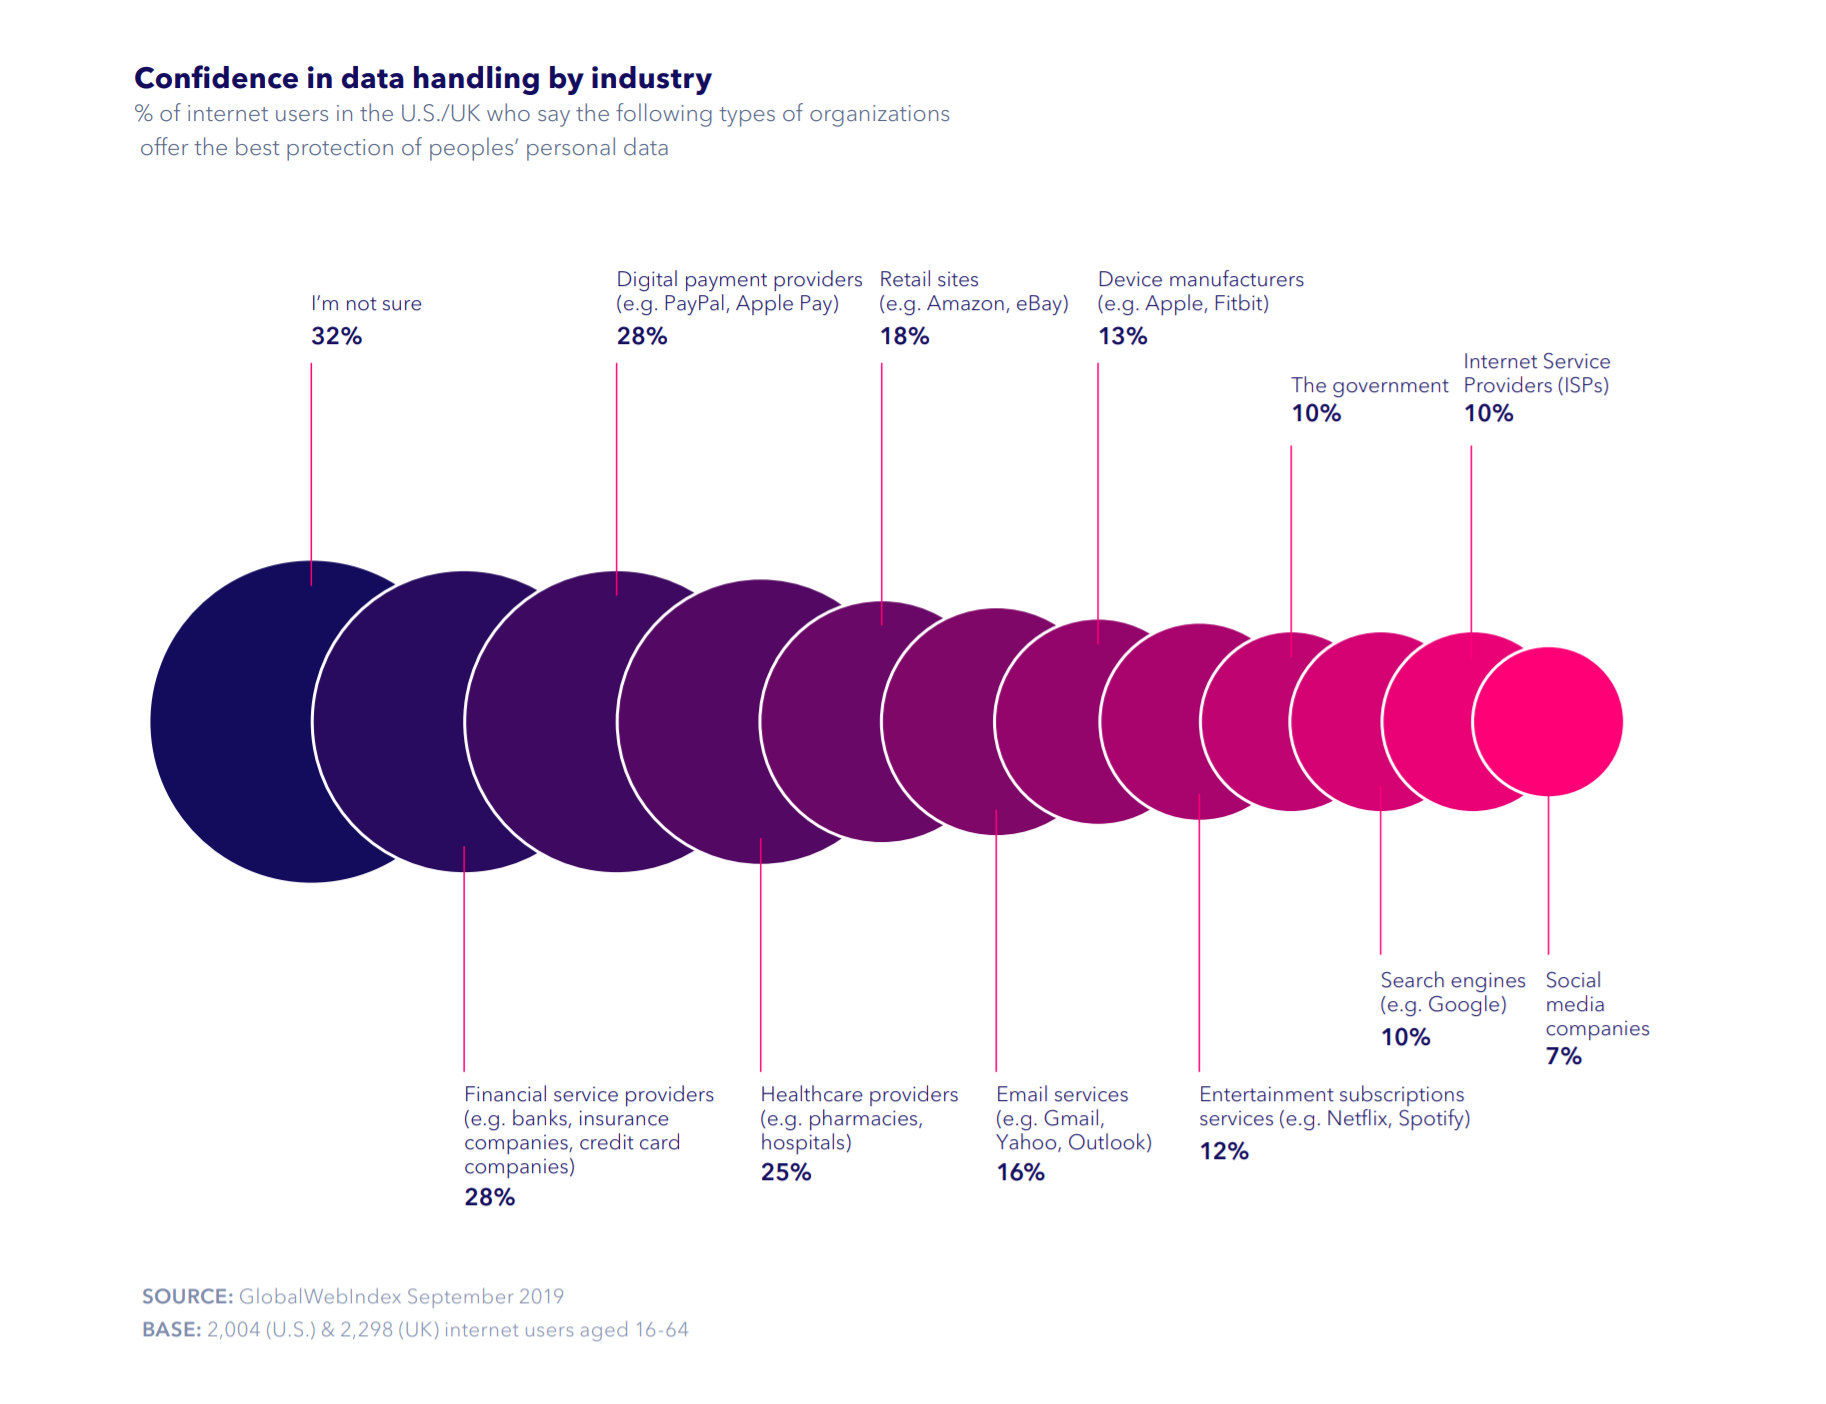 Confidence in data handling by industry - chart